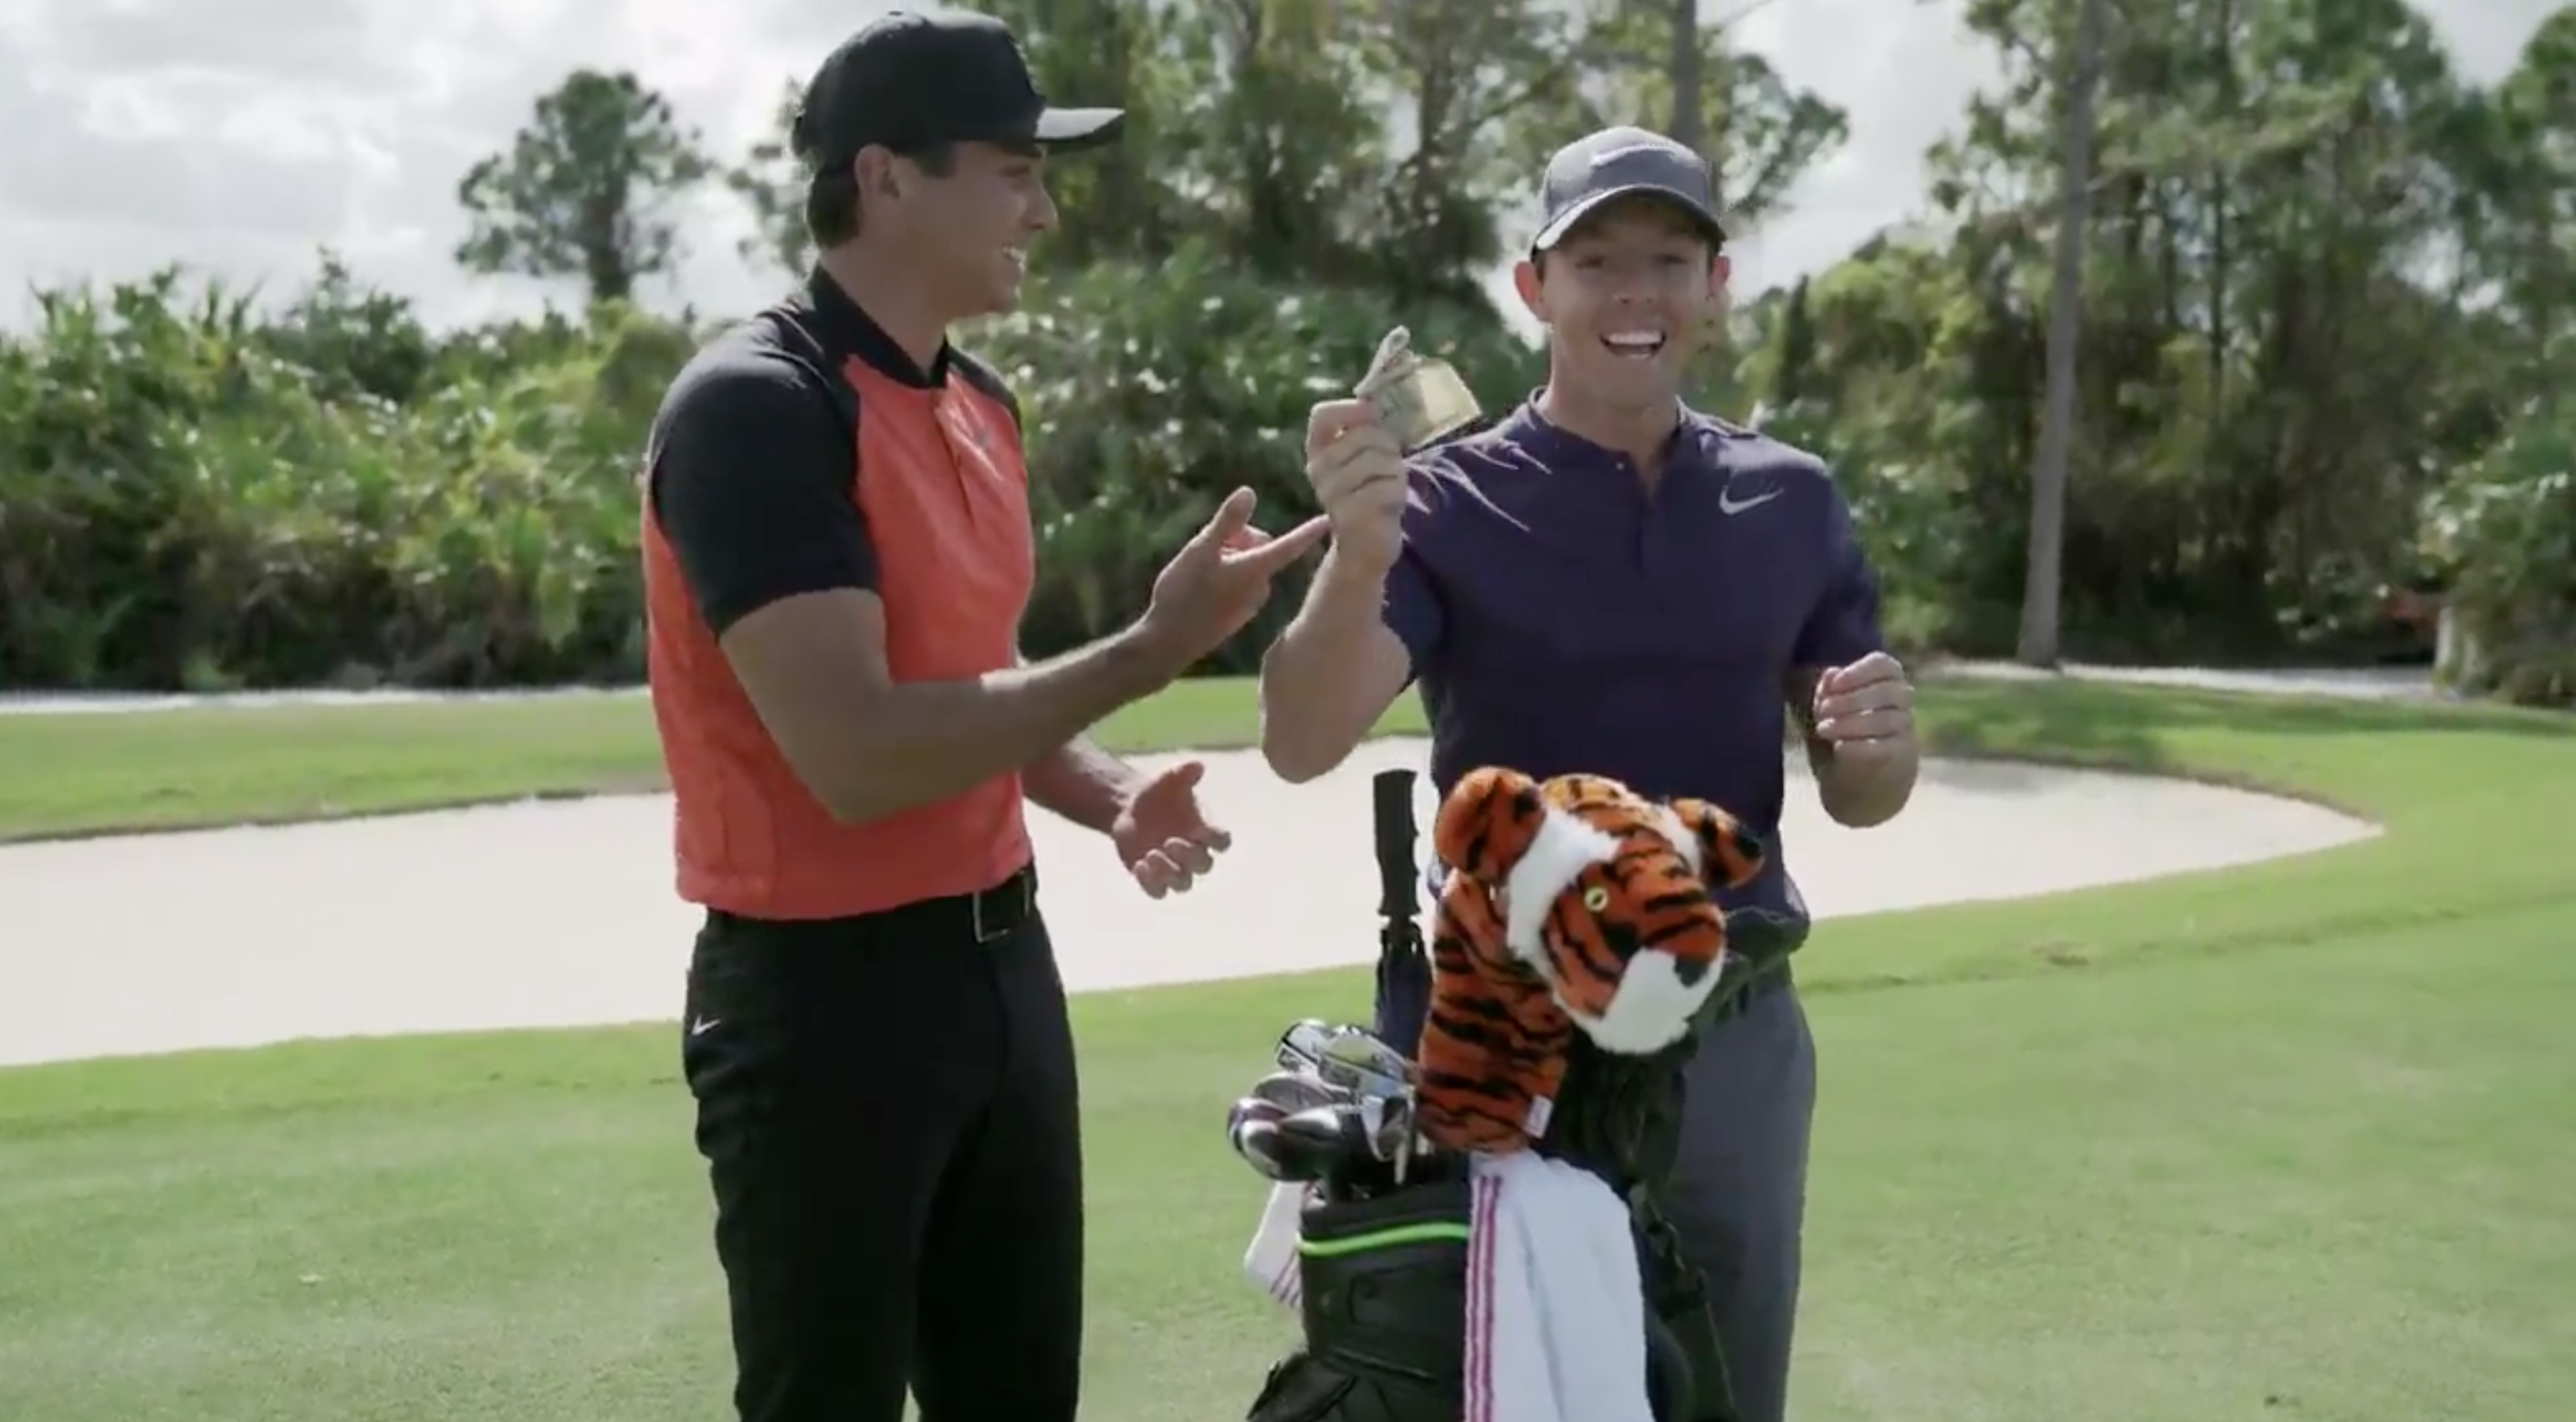 It was all fun and games until Rory McIlroy touched Tiger Woods's head cover.